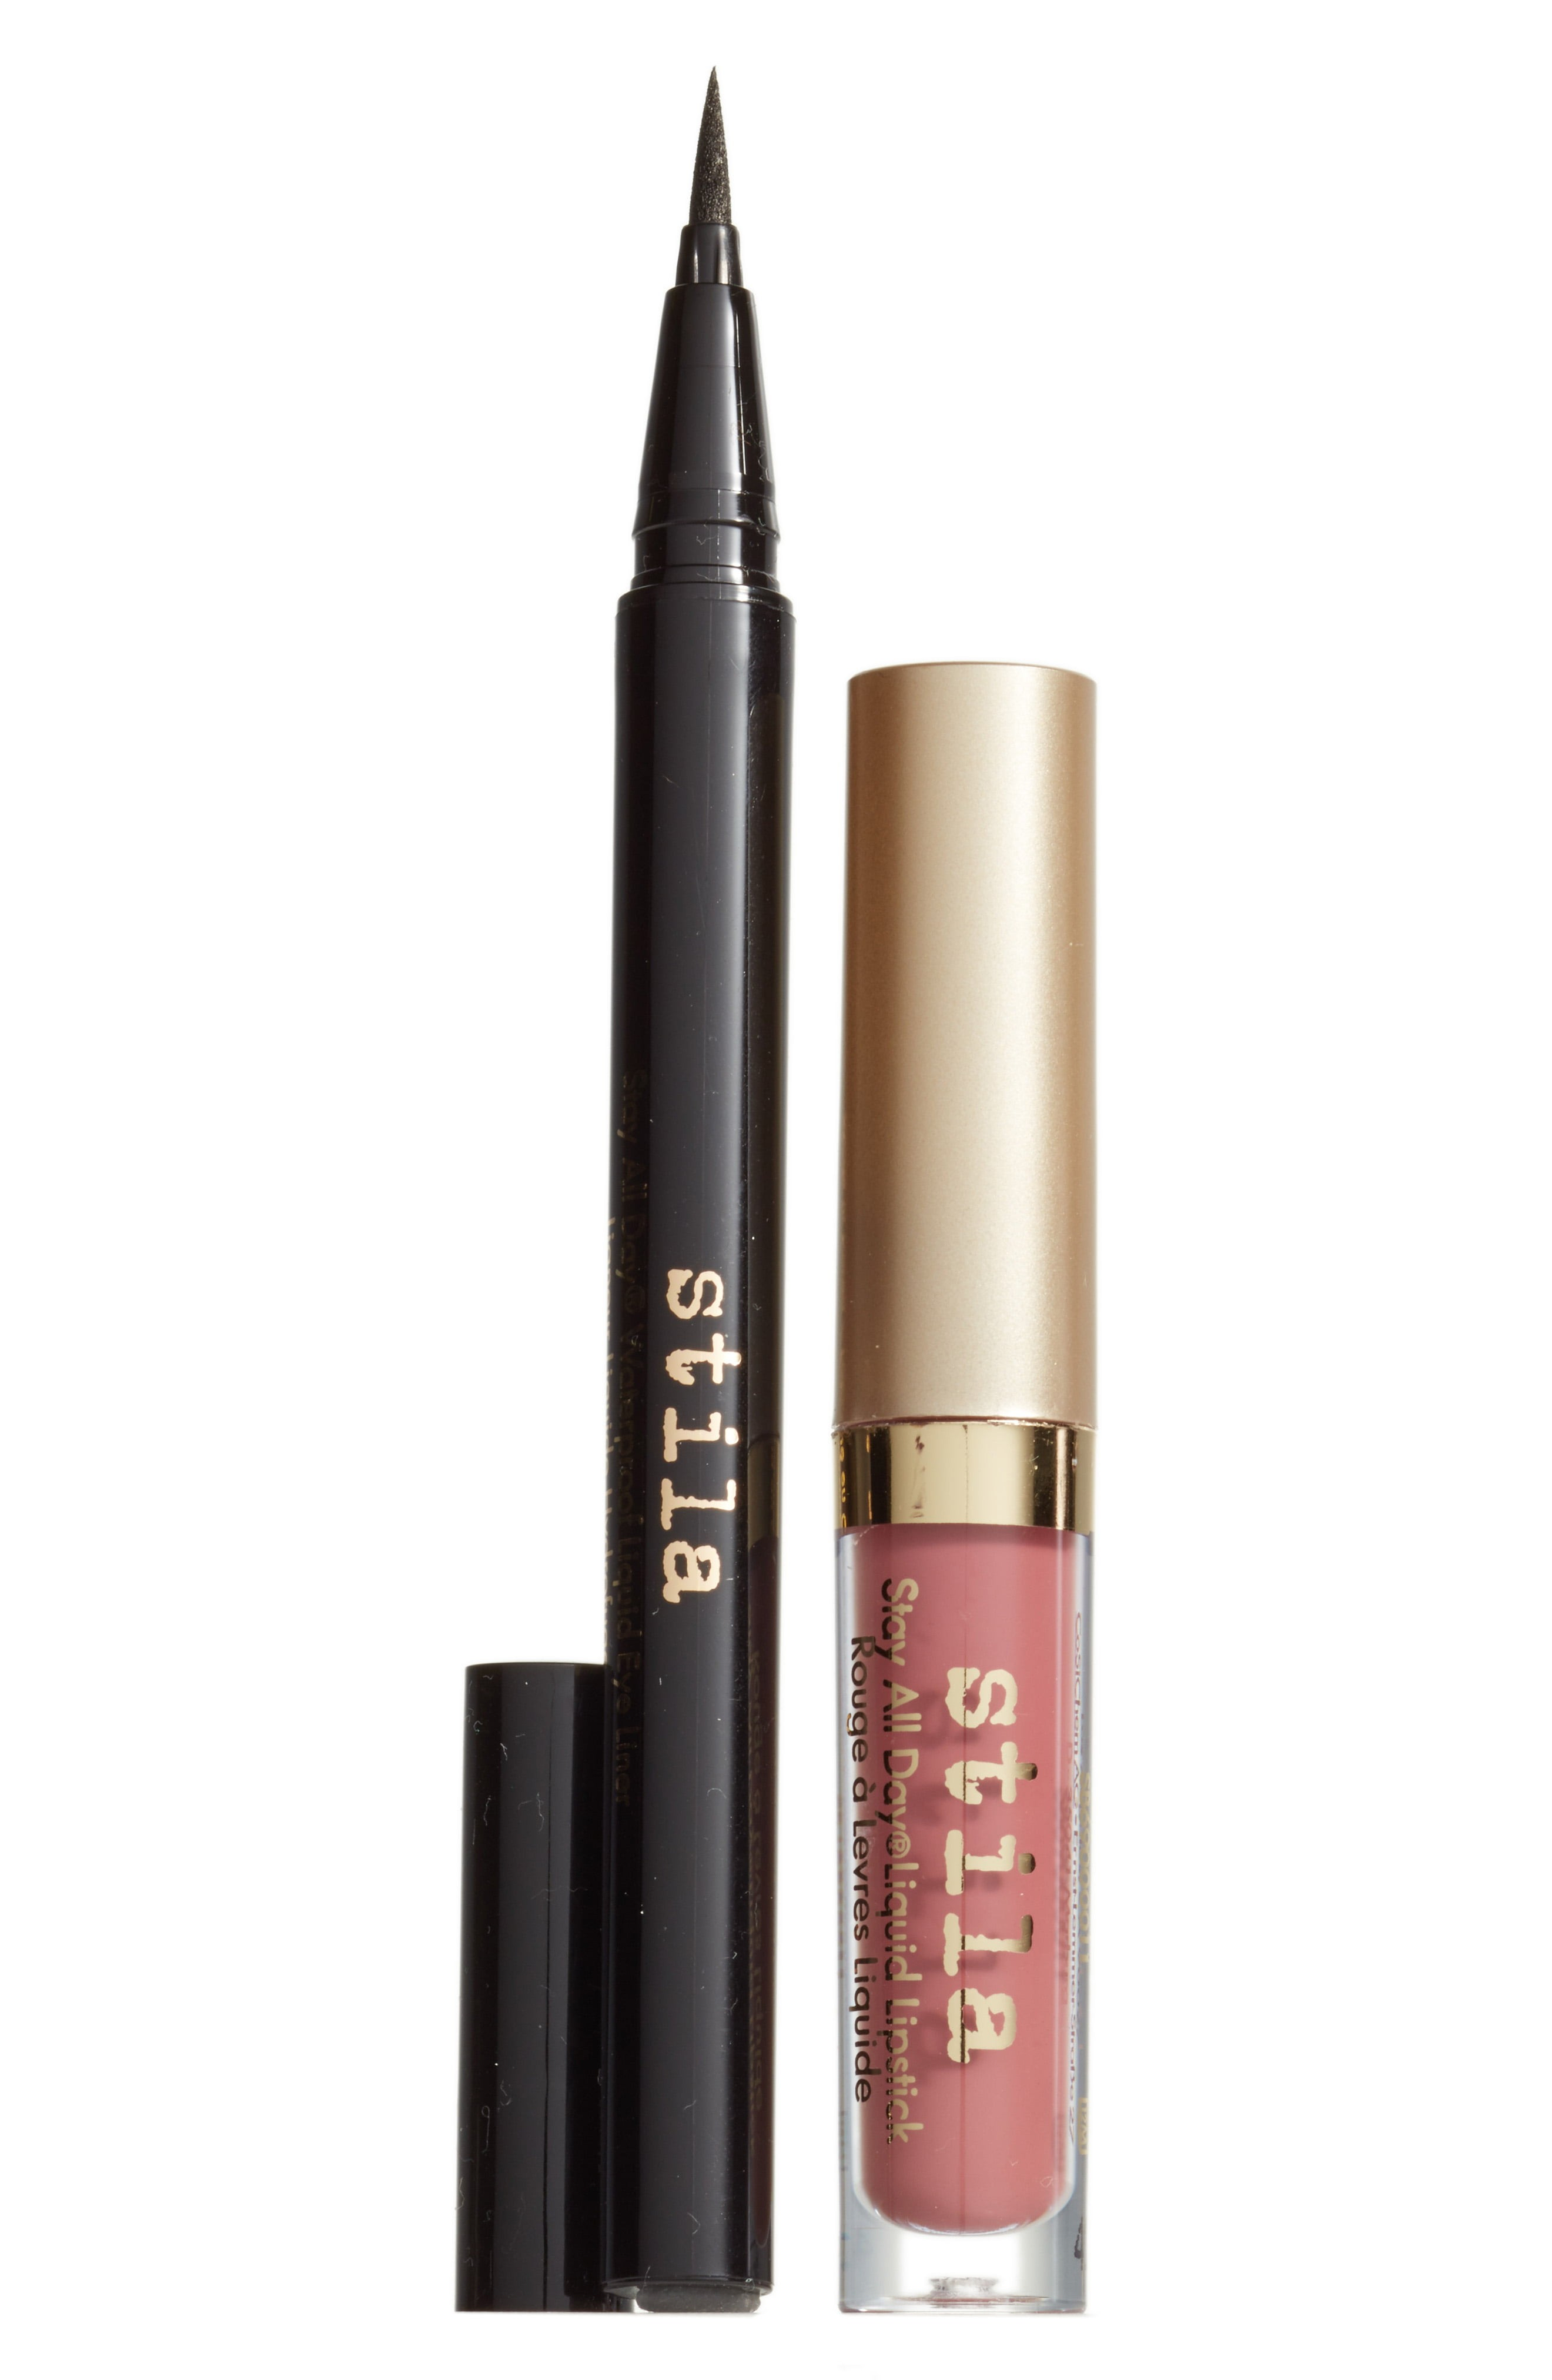 Fox and friends mega deals and steals - Stock Up On This I Love This Eyeliner You Save 2 Plus Get A Free Lip Gloss This Is A Really Really Good Deal